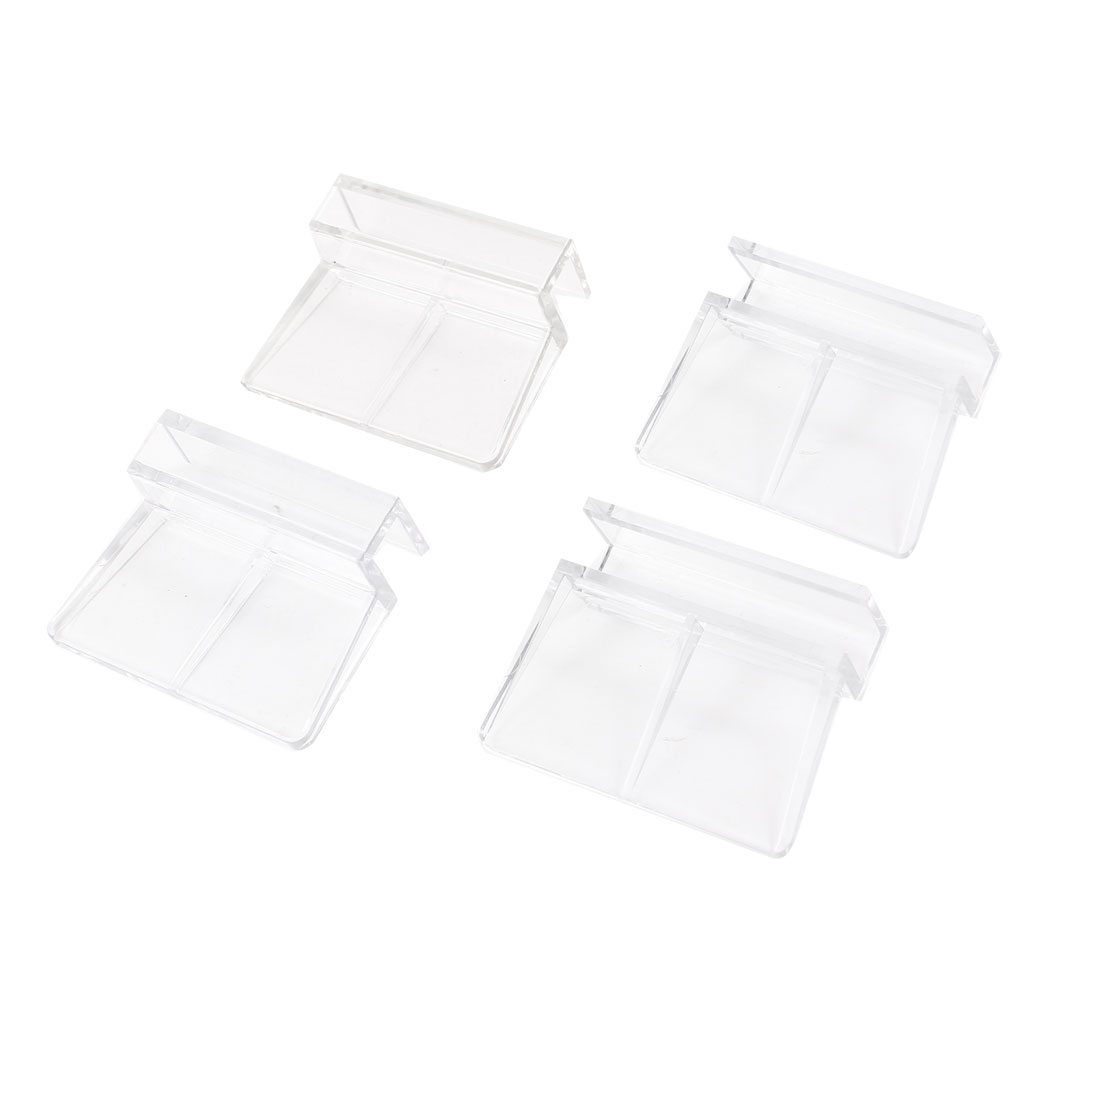 Clear Plastic 6-8mm Grass Thickness Aquarium Cover Holder Clip 4 Pcs